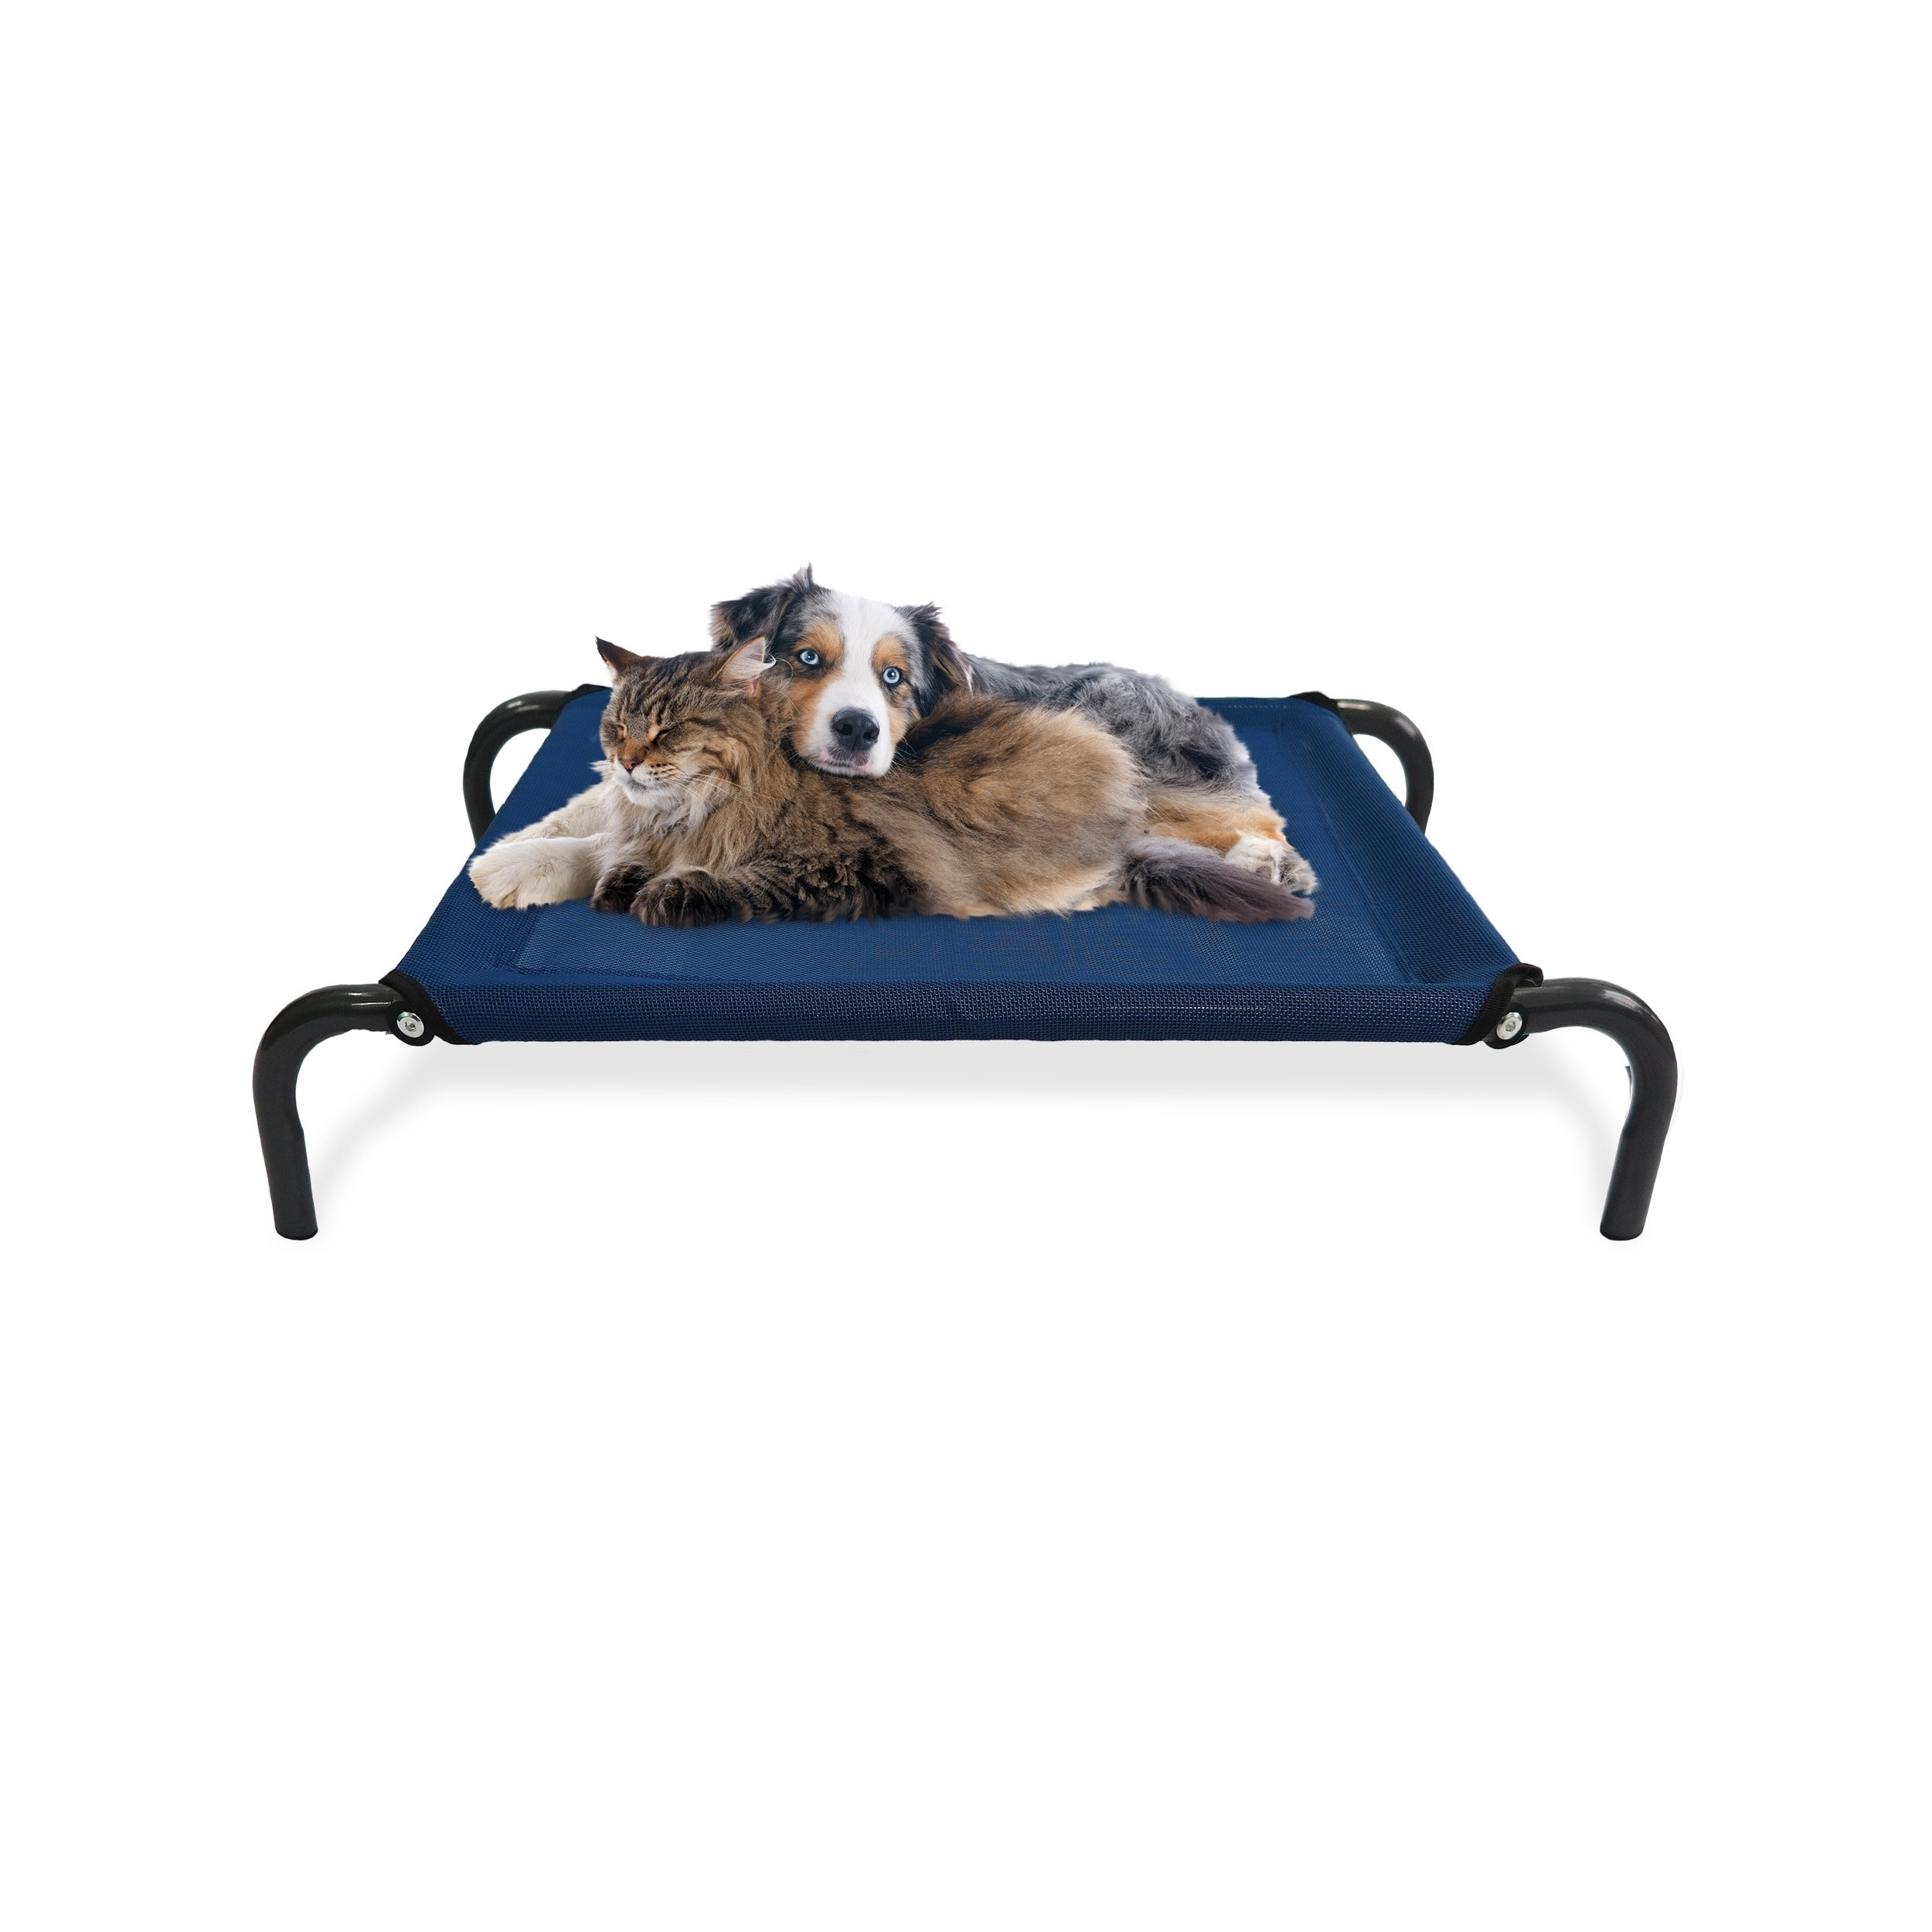 furhaven steel frame elevated hammock cot style raised pet bed   free shipping on orders over  45   overstock     19134572 furhaven steel frame elevated hammock cot style raised pet bed      rh   overstock